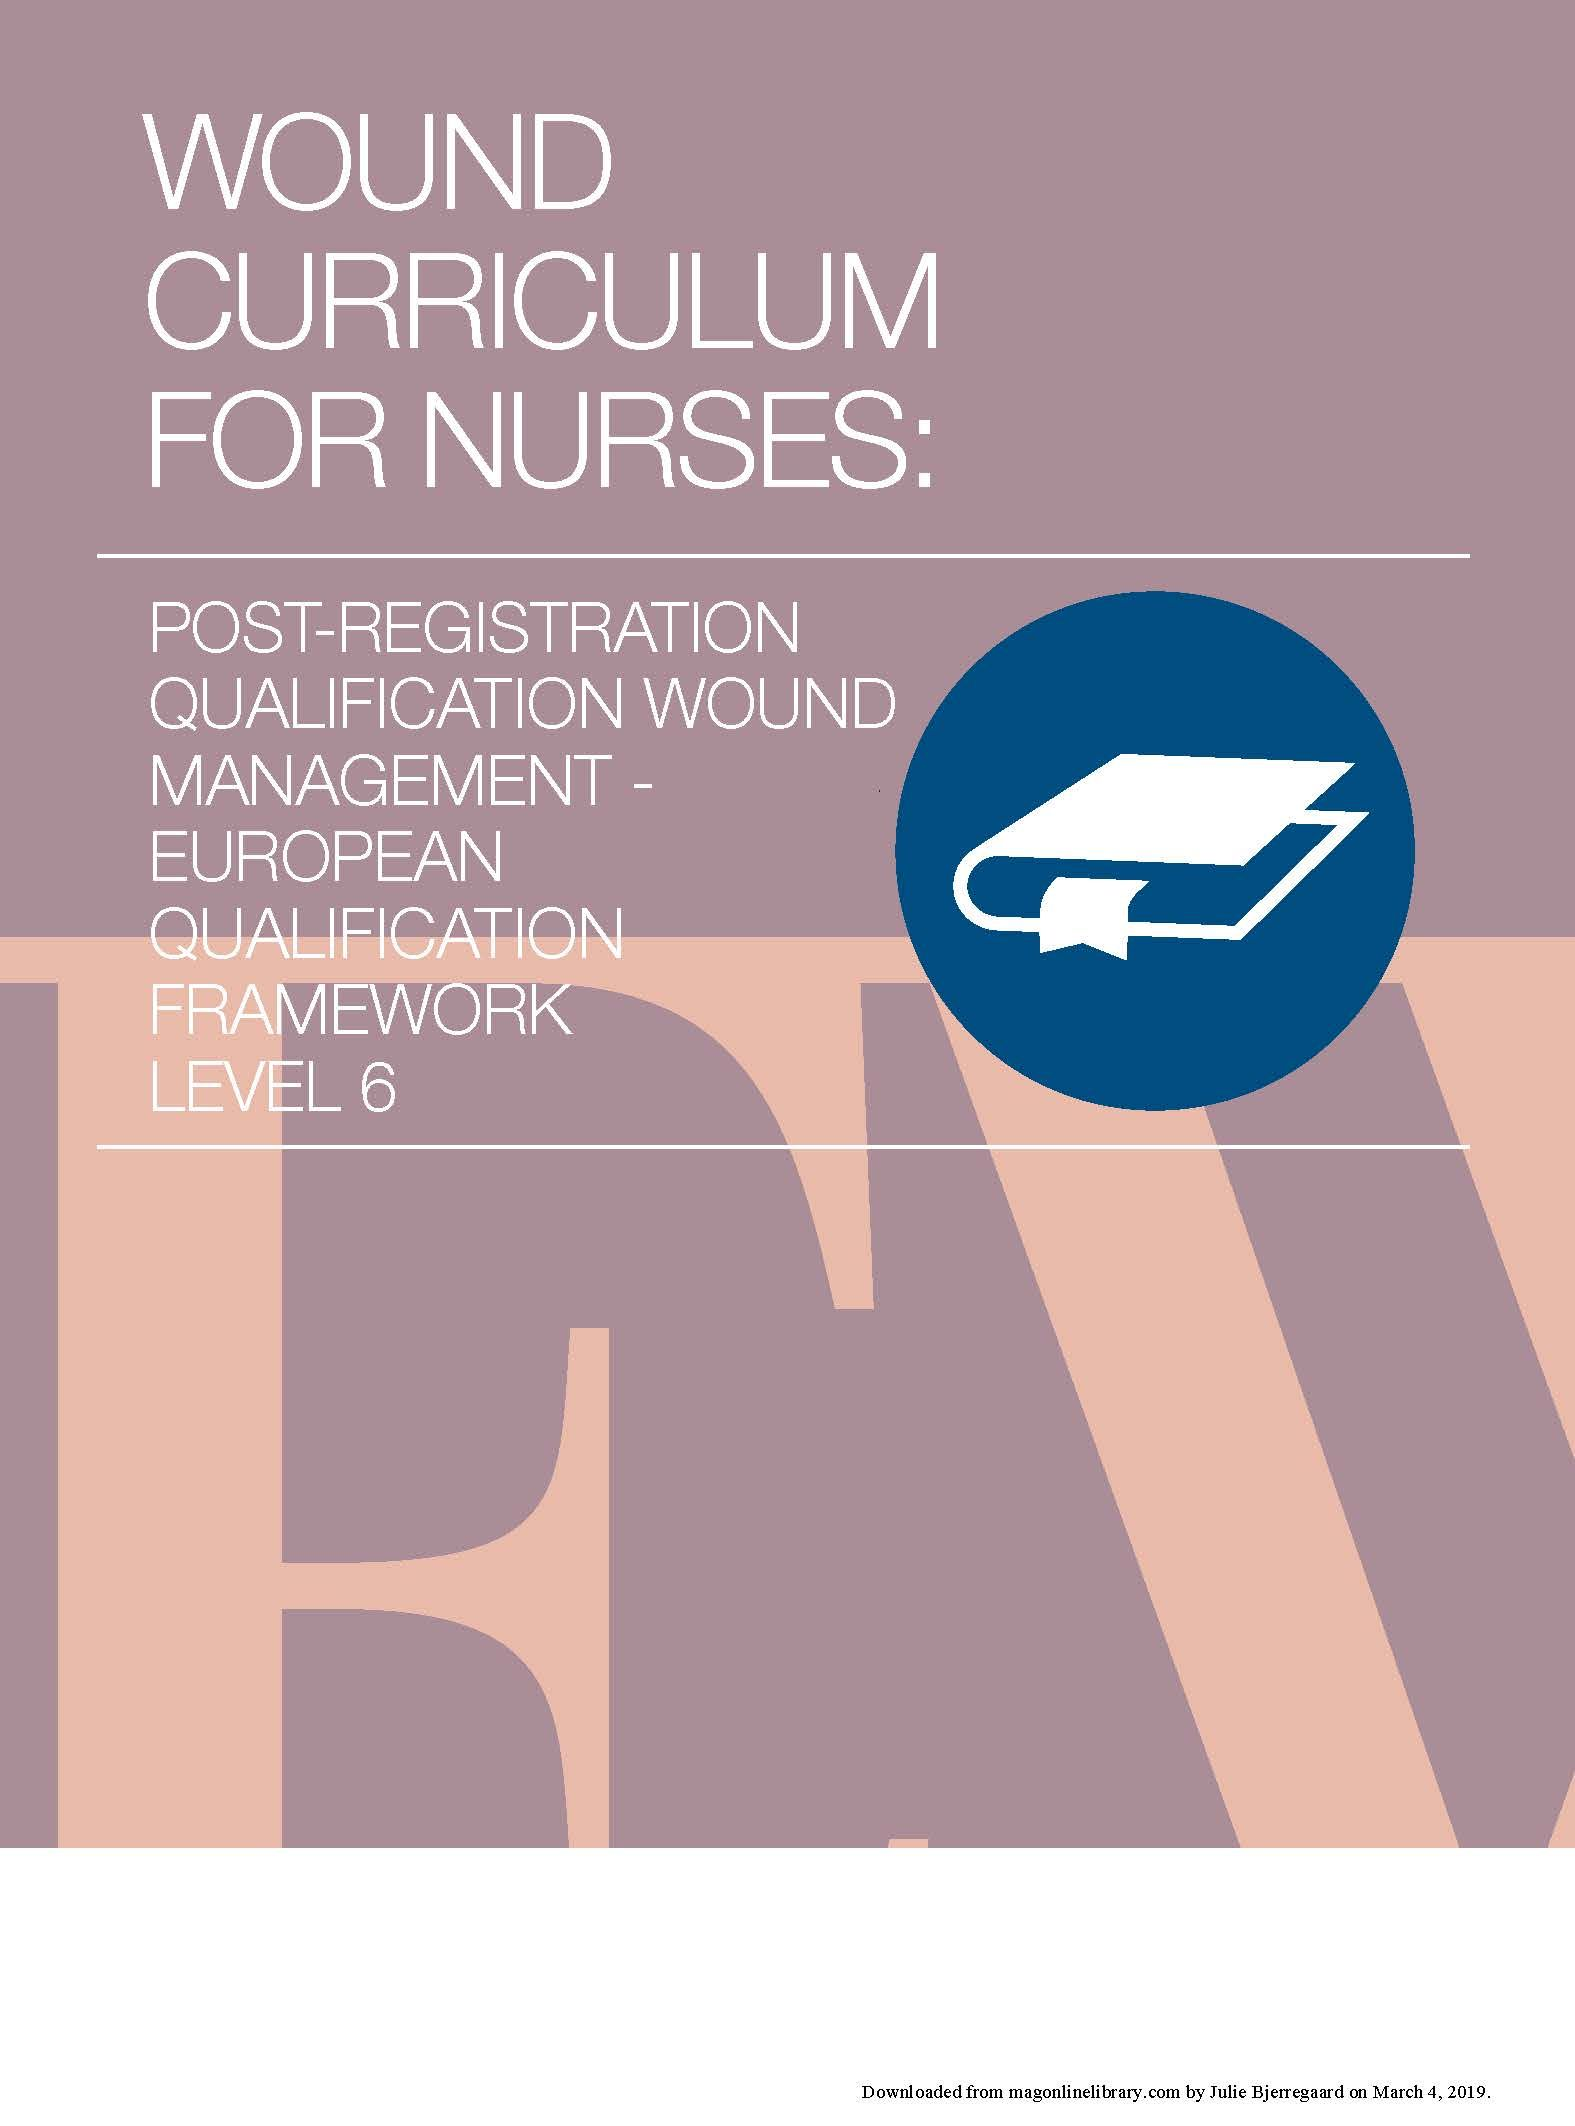 EWMA - Wound Curriculum for Nurses Level 6